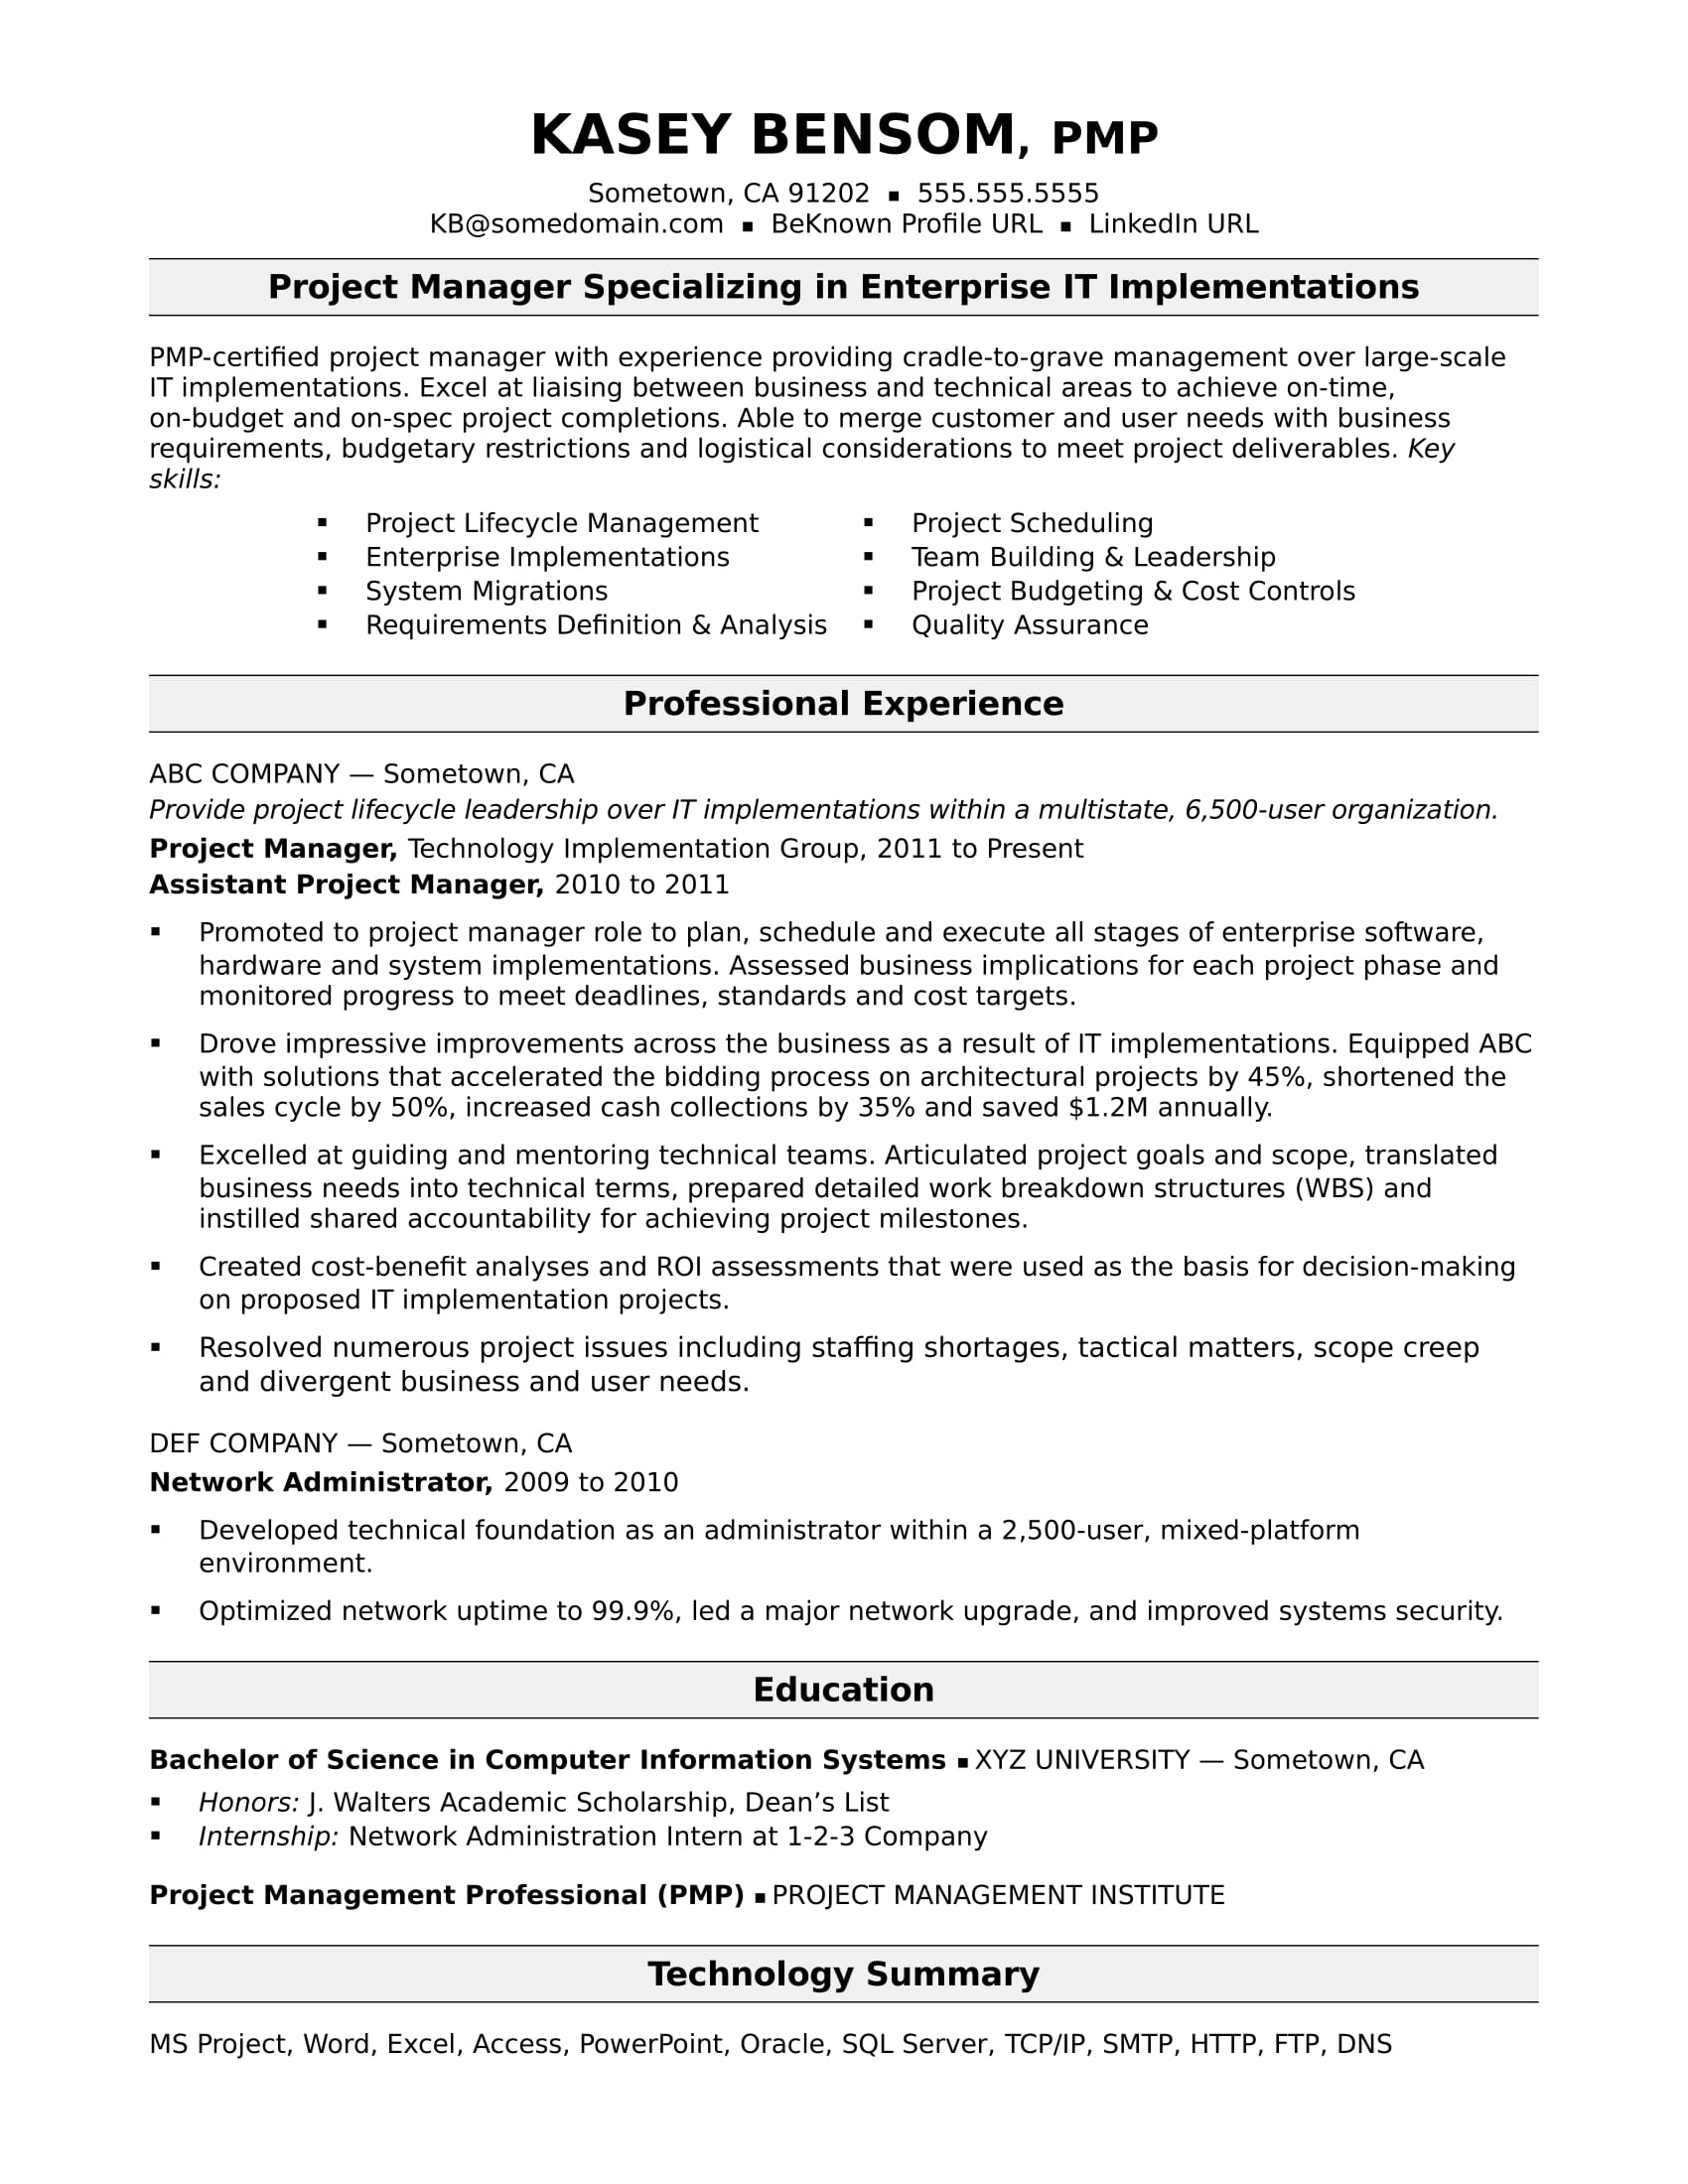 sample resume for midlevel it project manager monster pmo role chart photography Resume Sample Resume For Pmo Role